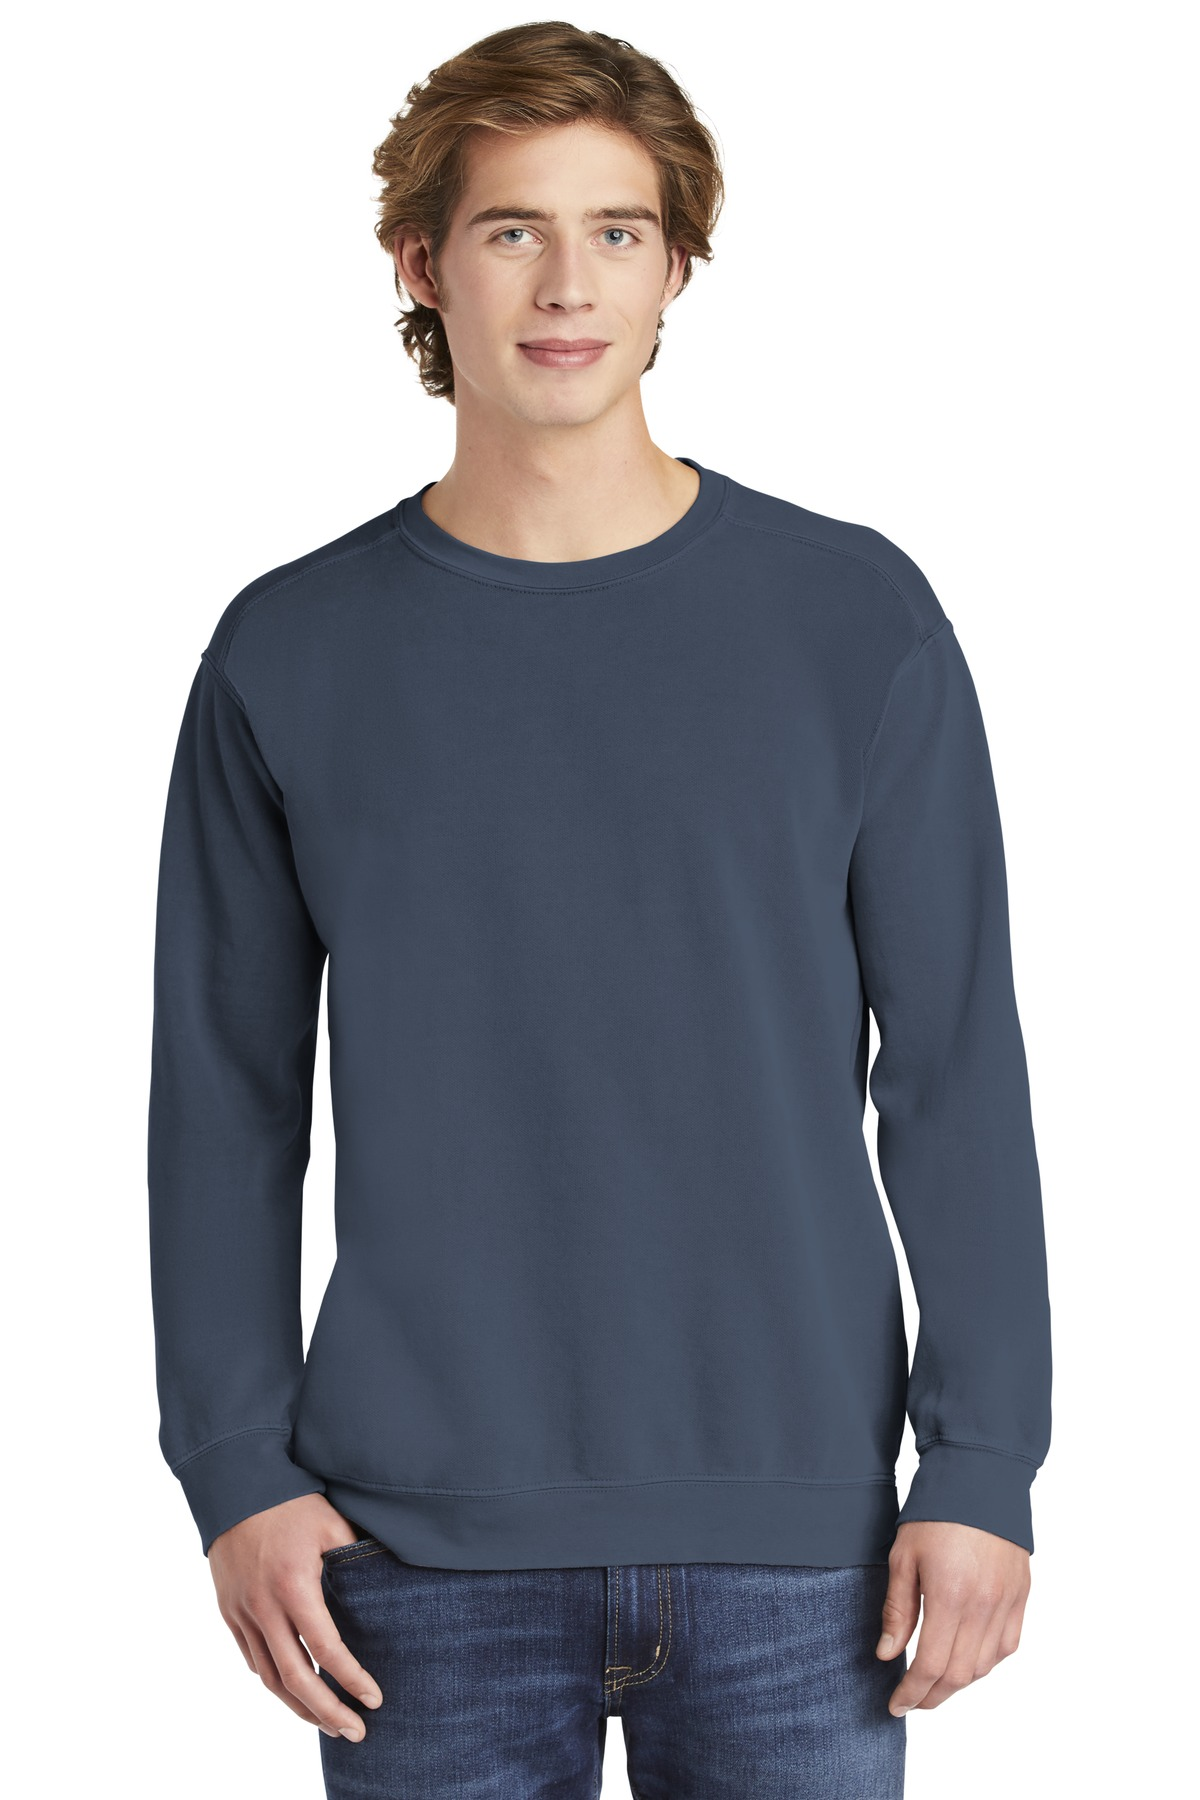 COMFORT COLORS  ®  Ring Spun Crewneck Sweatshirt. 1566 - Blue Jean